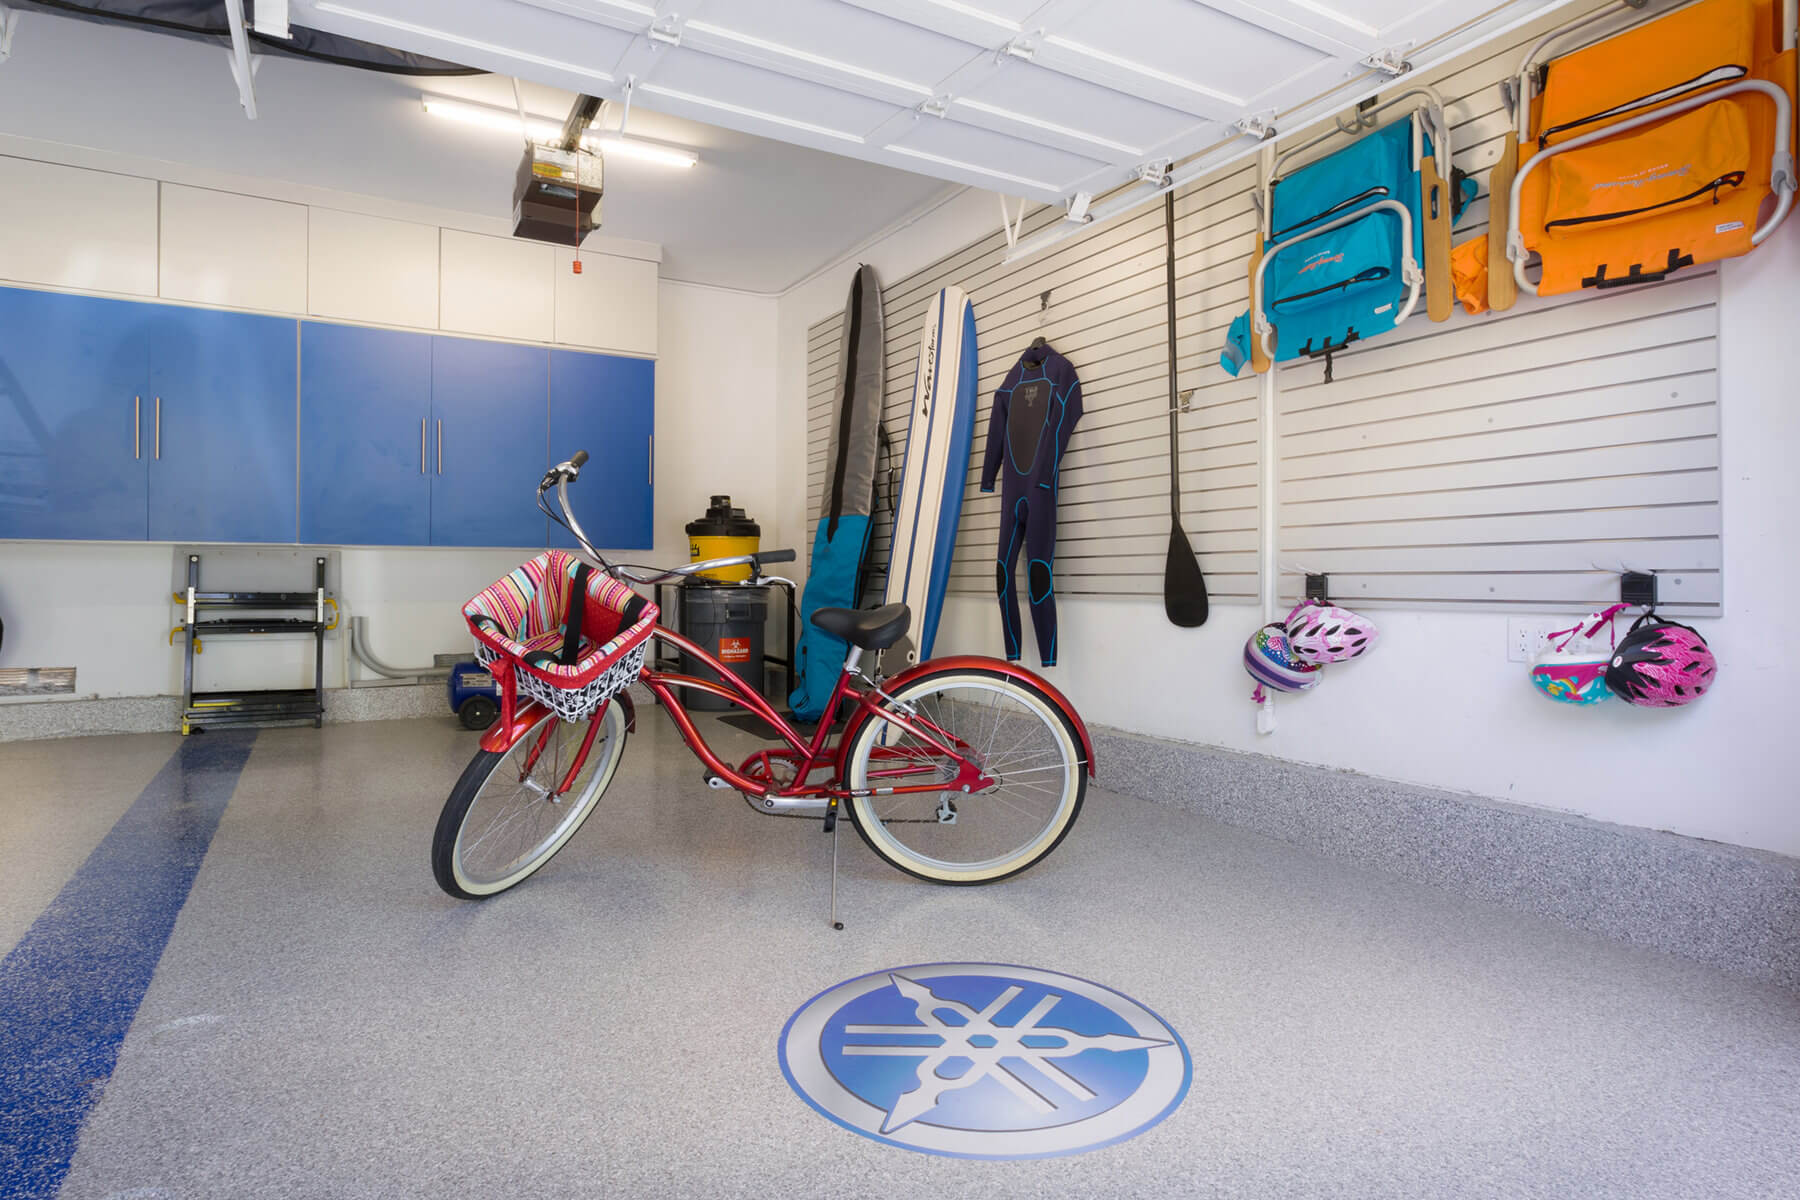 garage sports storage 29 garage storage ideas plus 3 garage caves 15731